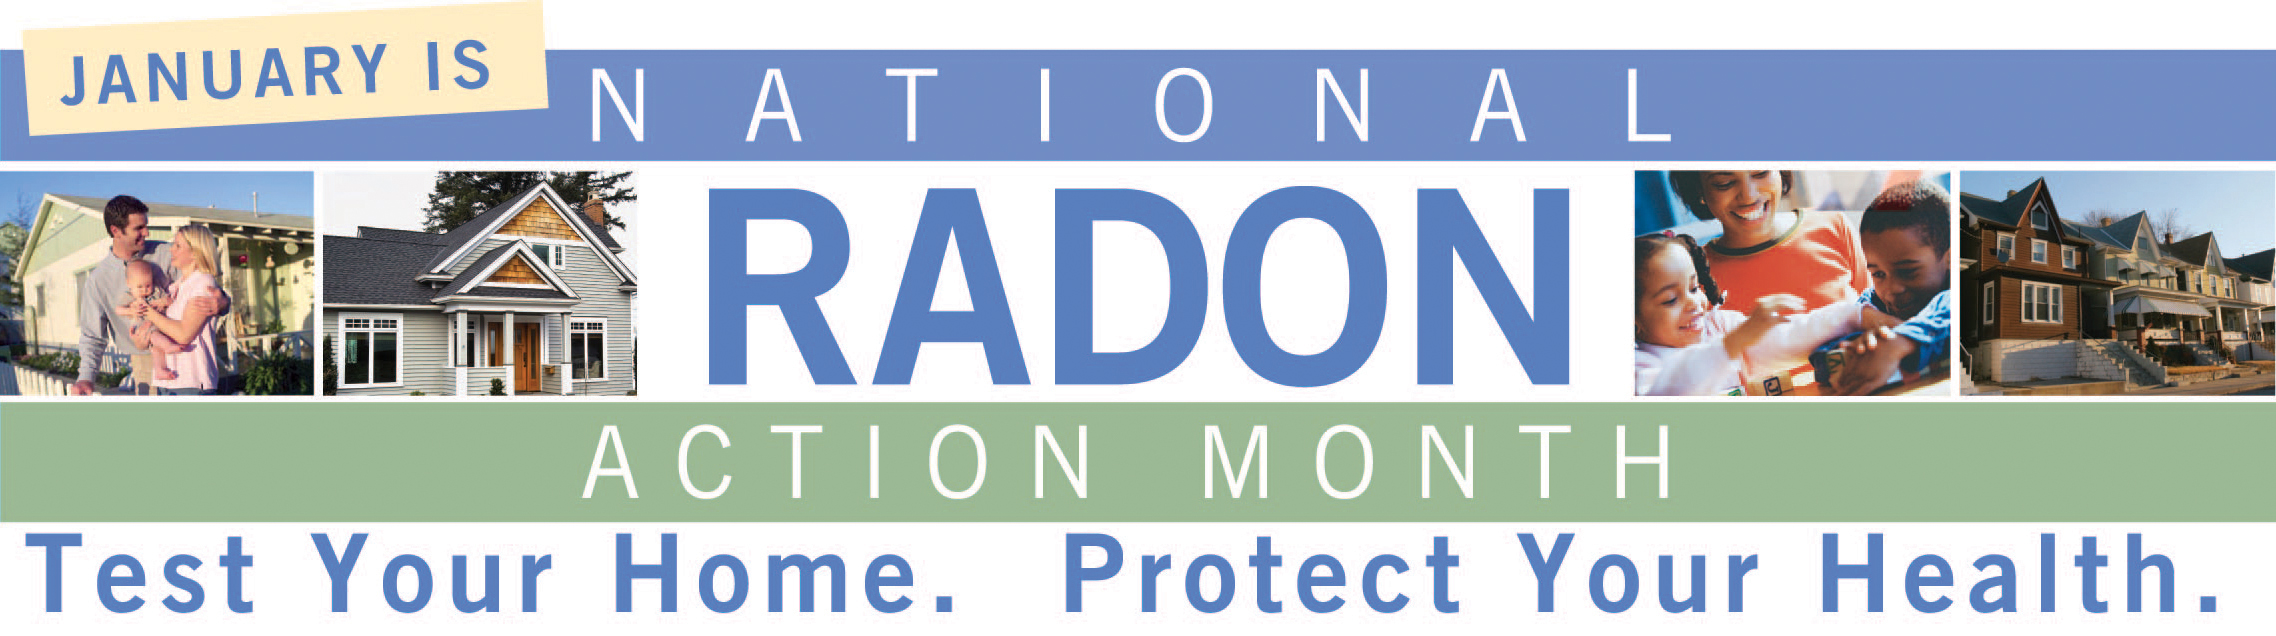 January is National Radon Action Month (NRAM)